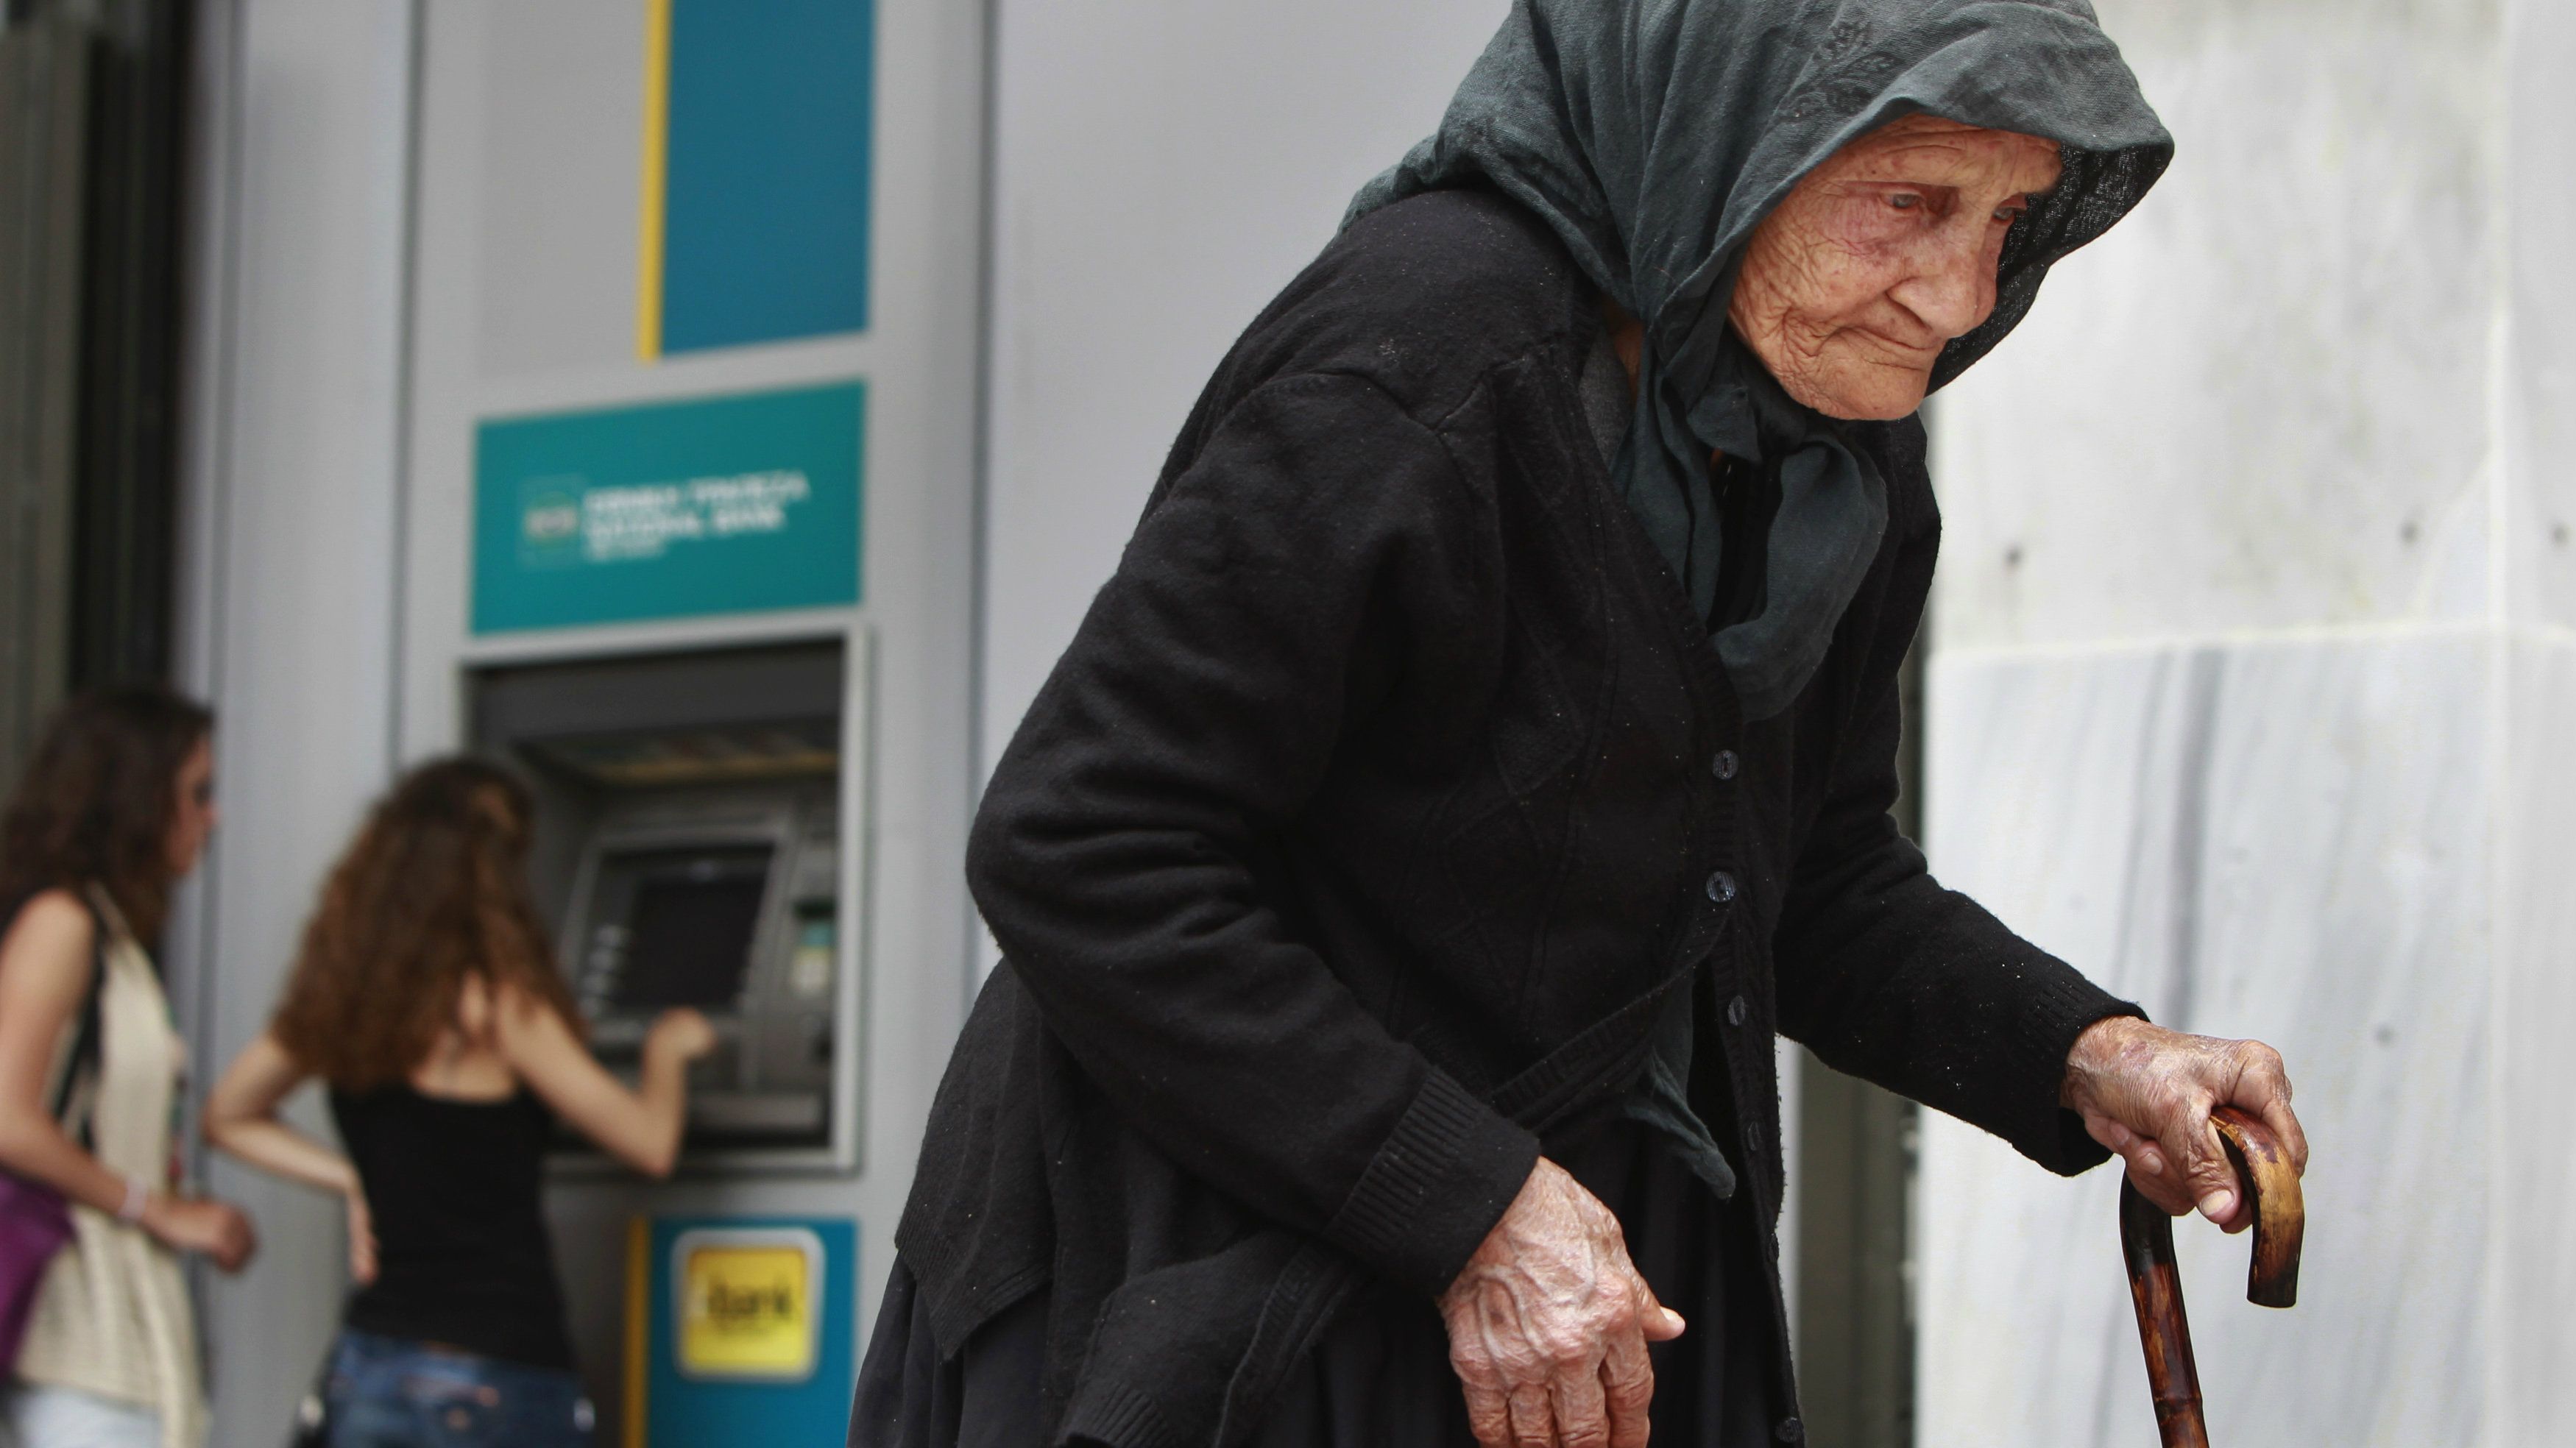 A woman makes her way by as people make a transaction at an ATM machine outside a National Bank branch in central Athens May 29, 2012.